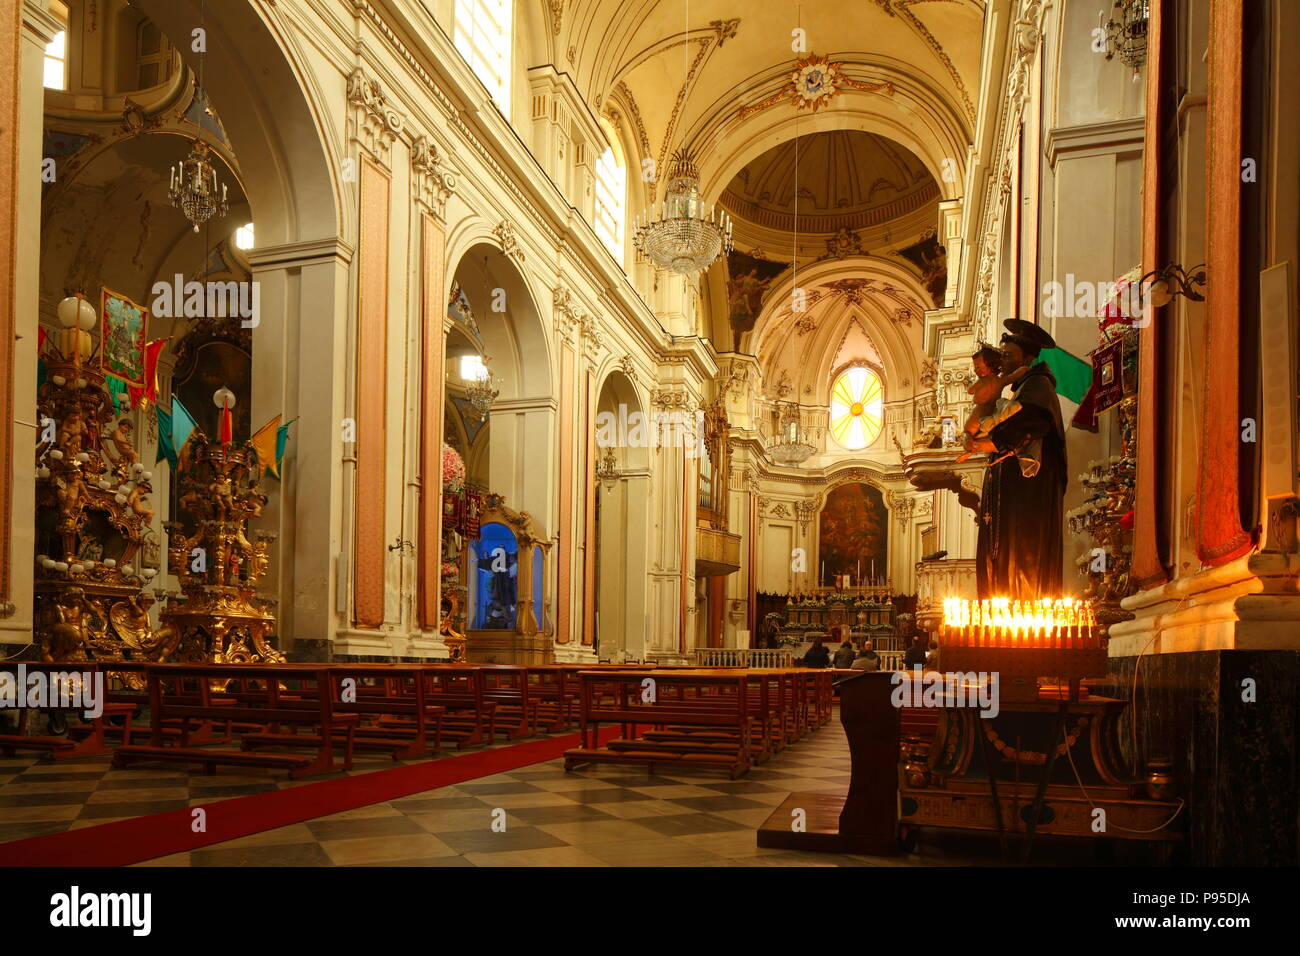 Interieur, Kathedrale Sant'Agata, Catania, Sizilien, Italien, Europa ich Innenraum, Kathedrale Dom Sant'Agata, Catania, Sizilien, Italien, Europa Stockbild